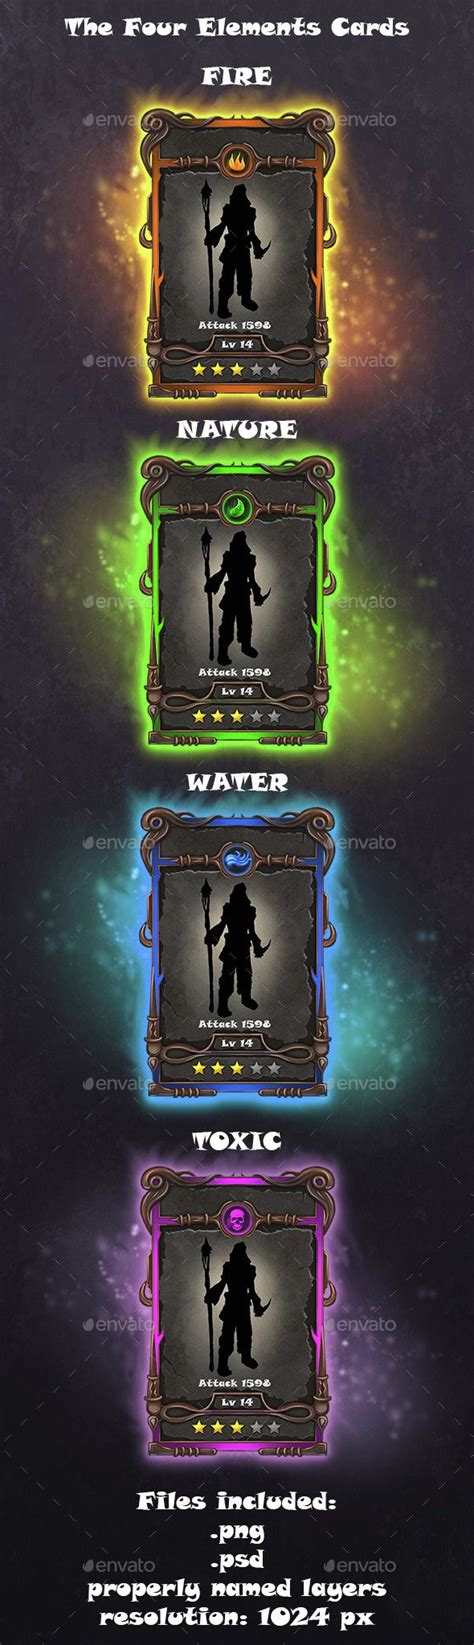 character card template photoshop crafting cards template ui 게임 ui 및 카드